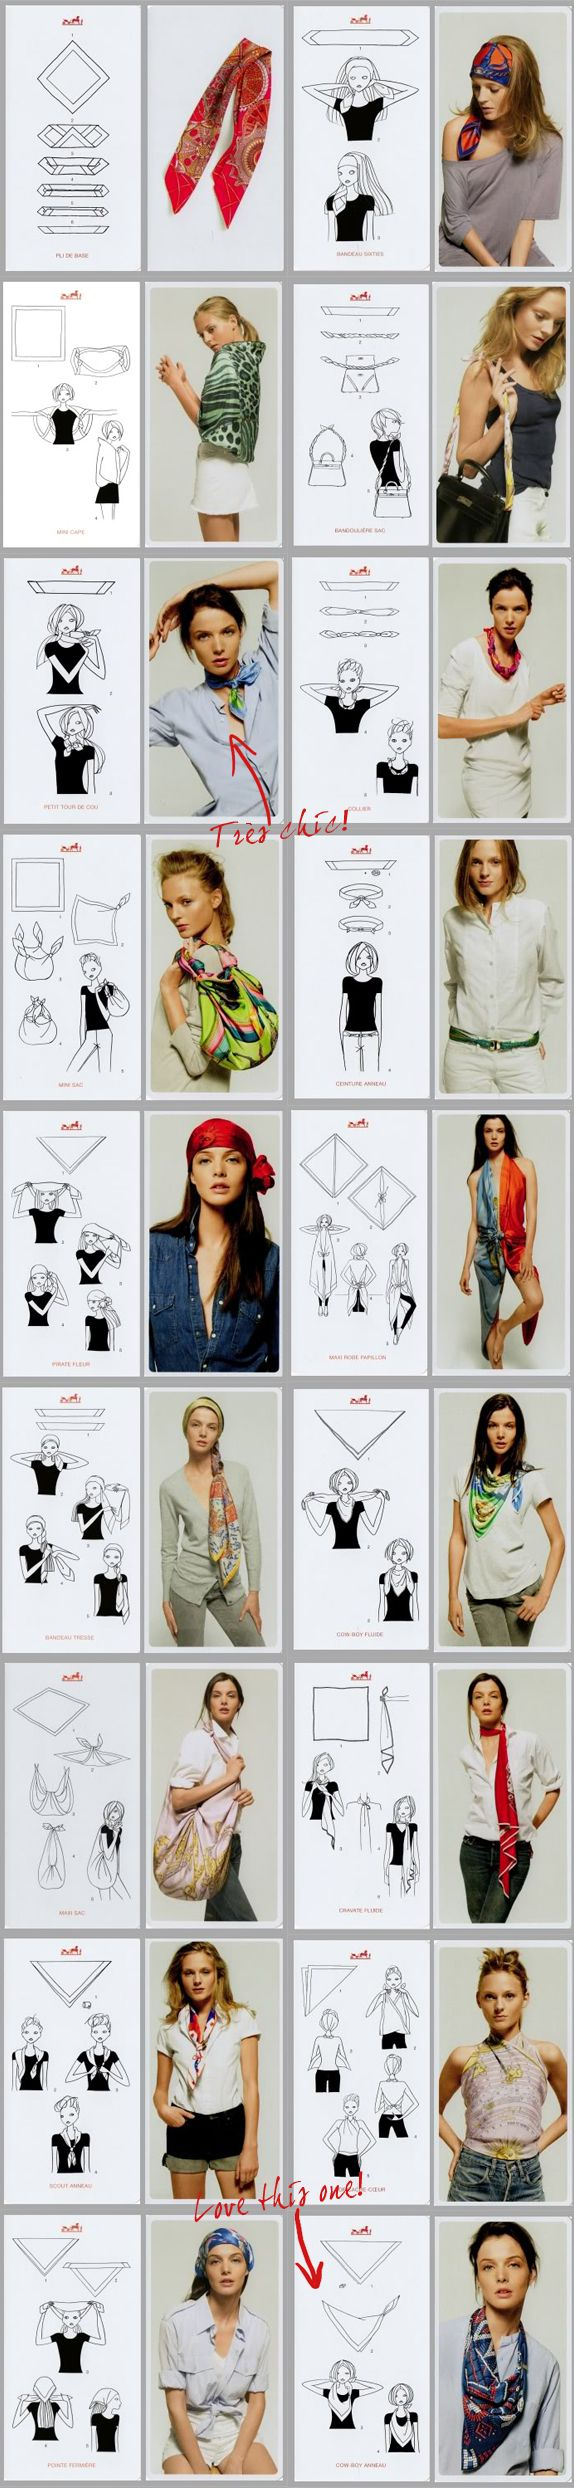 50 ways to wear a scarf, some new to me. I especially like the one where a large square scarf is folded into a handbag